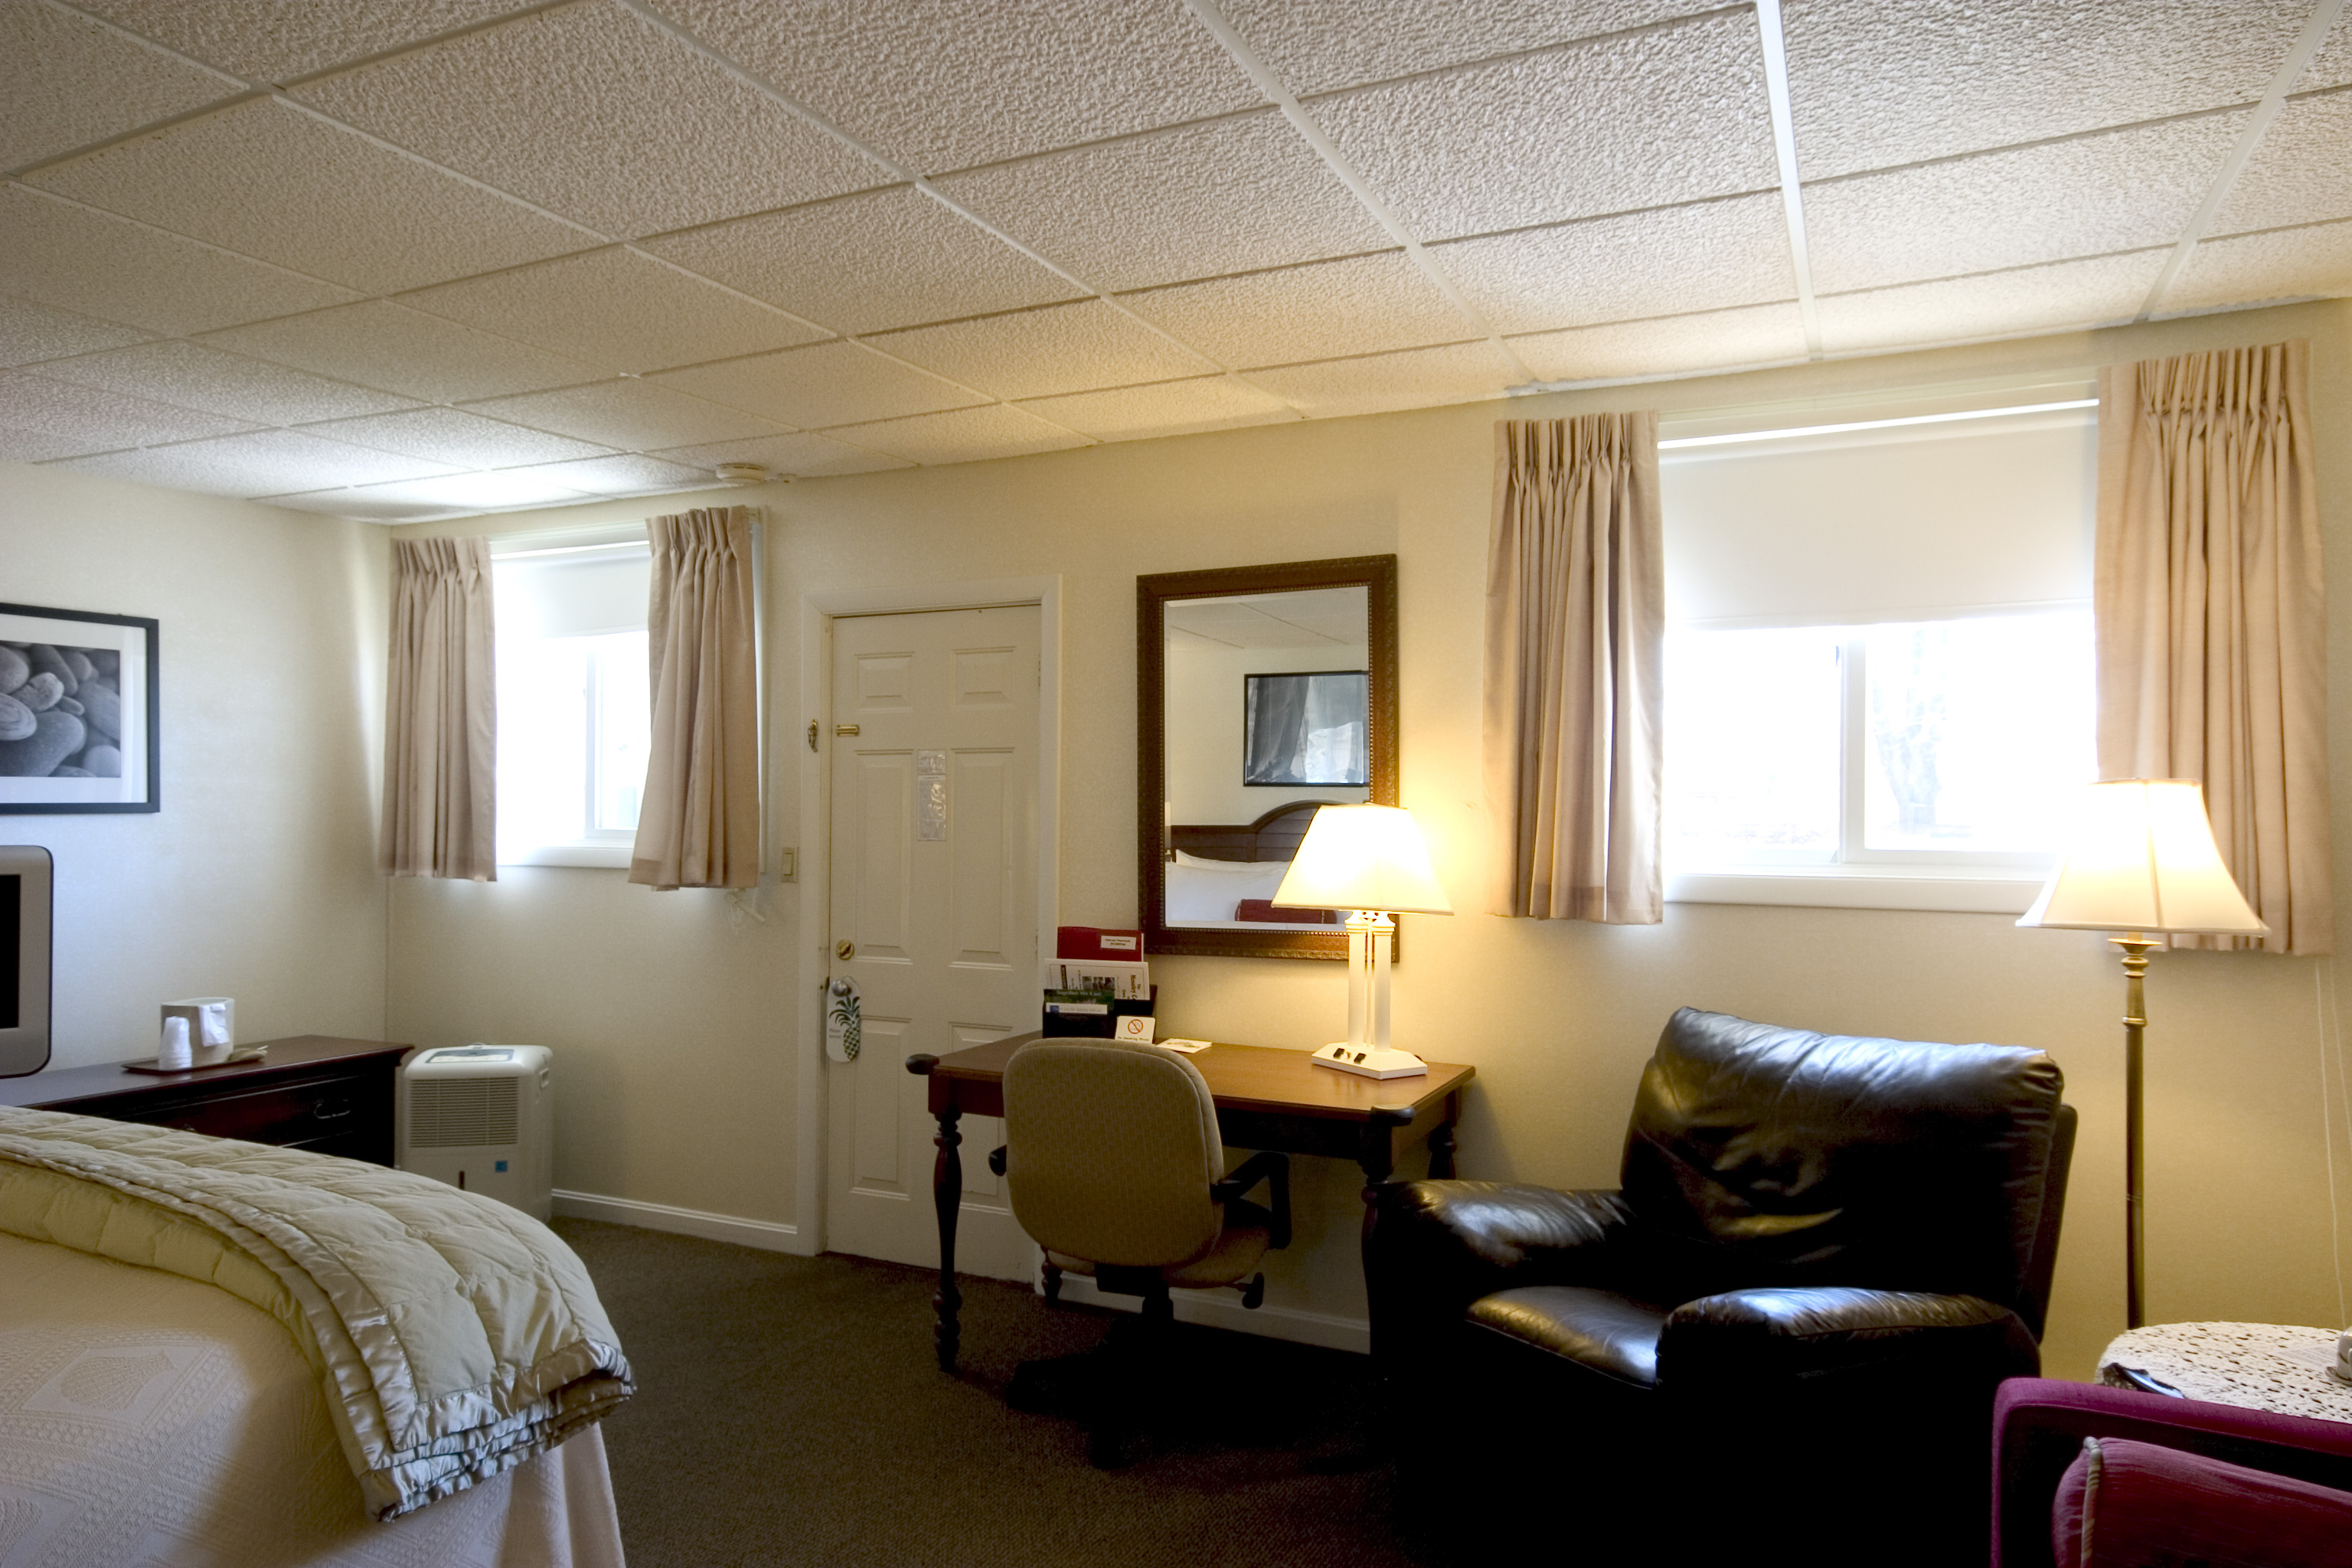 Town Motel Room 10